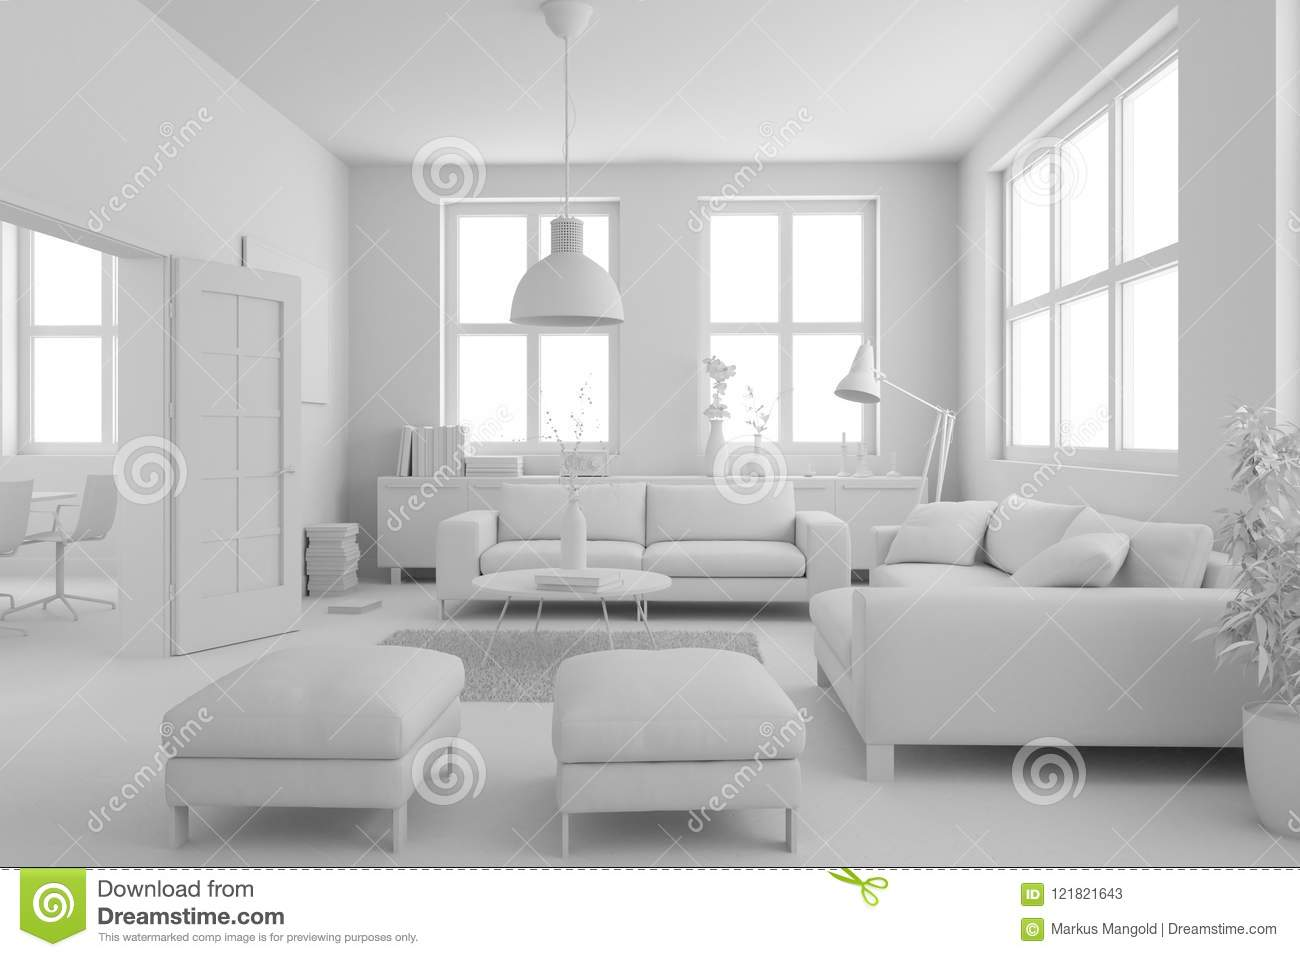 Model Of Modern Interior Design Living Room Stock Illustration Illustration Of Livingroom Carpet 121821643